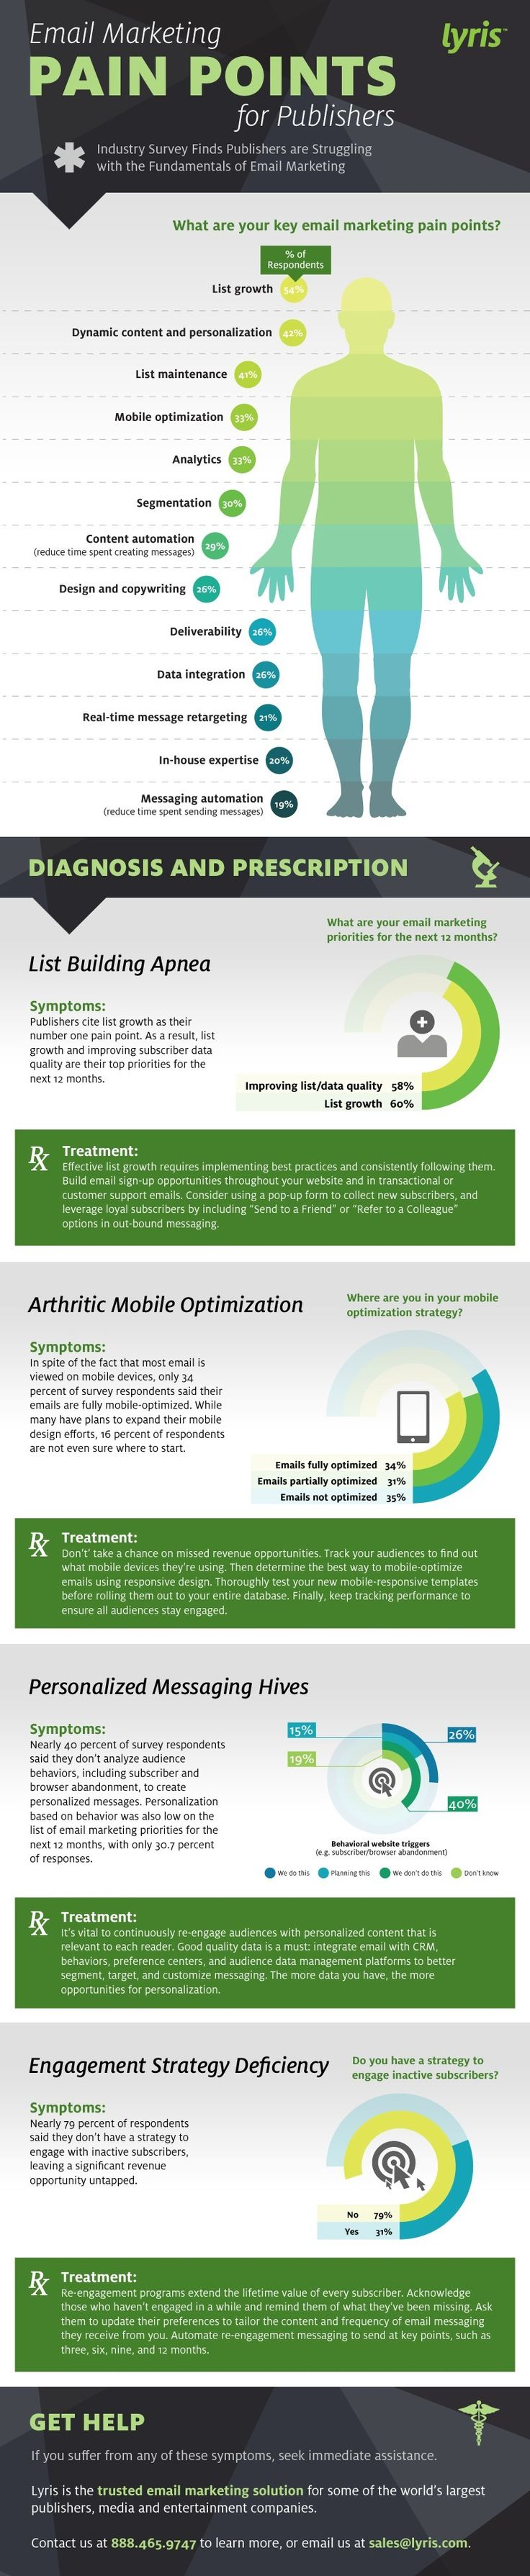 Email Marketing - Publishers' Top Email Marketing Pain Points [Infographic] : MarketingProfs Article